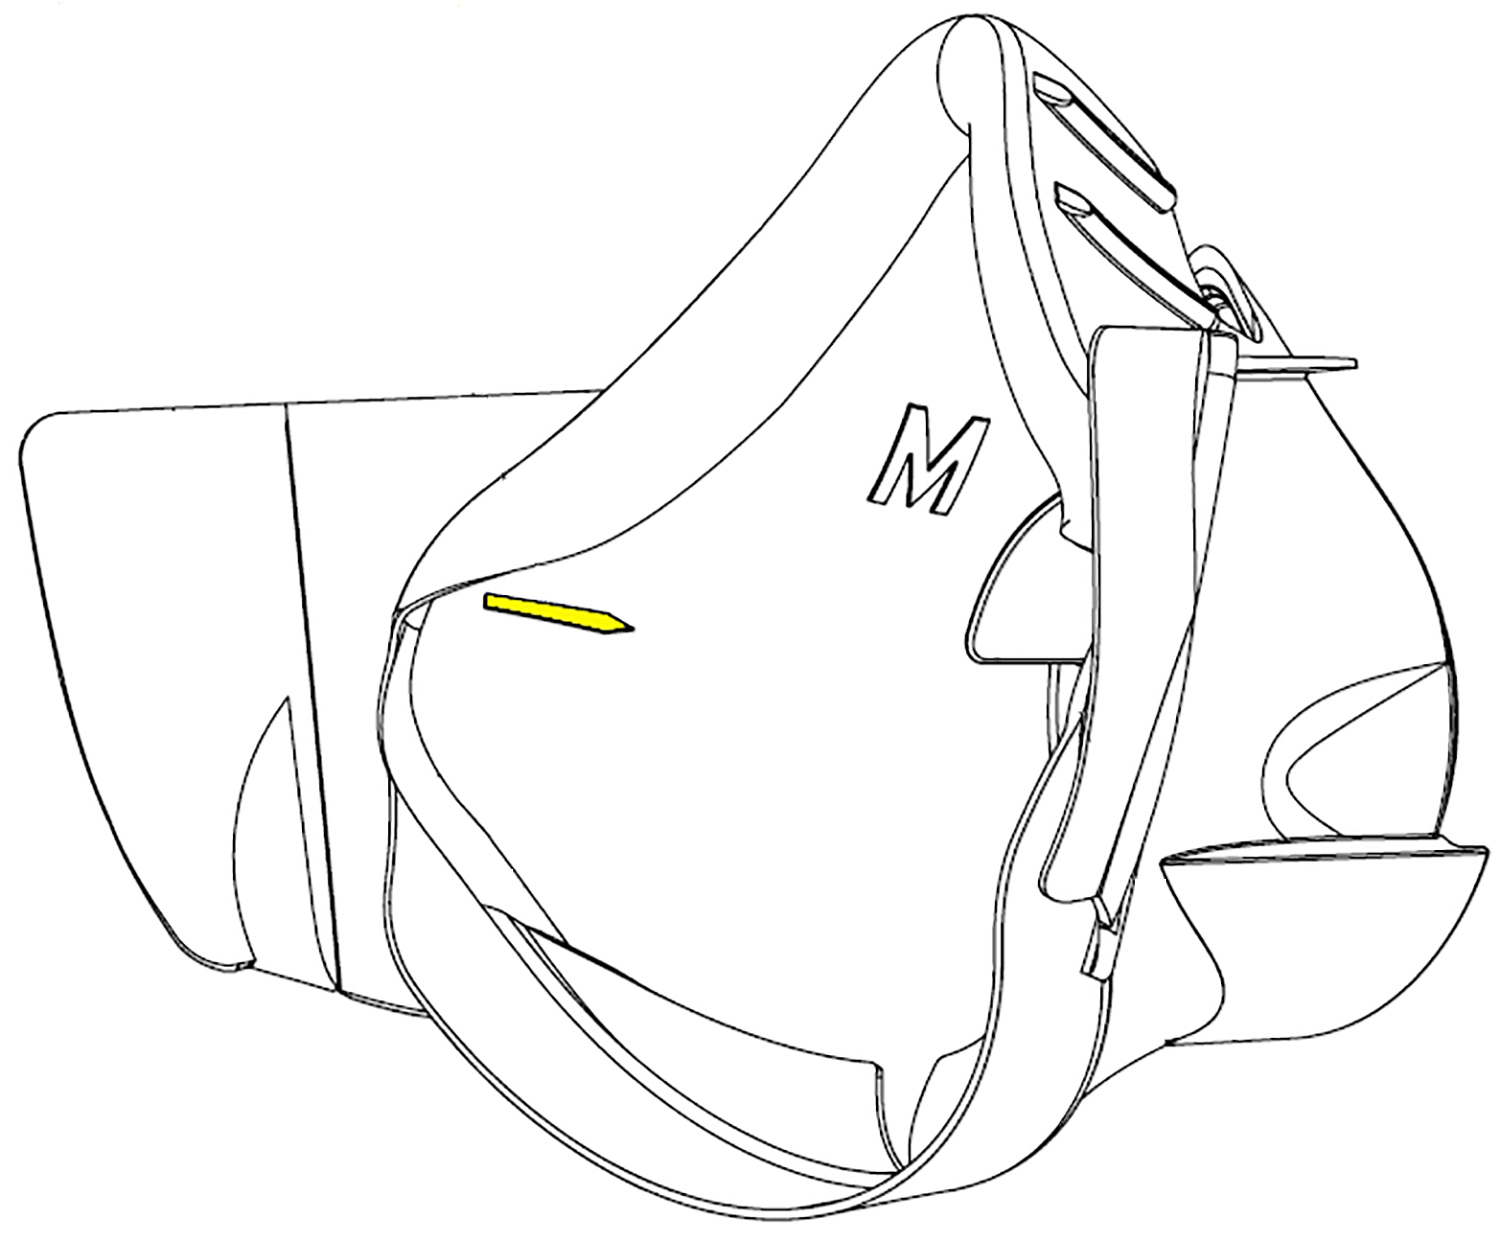 Line drawing showing arrow on the nosecup that helps properly install the internal drink tube